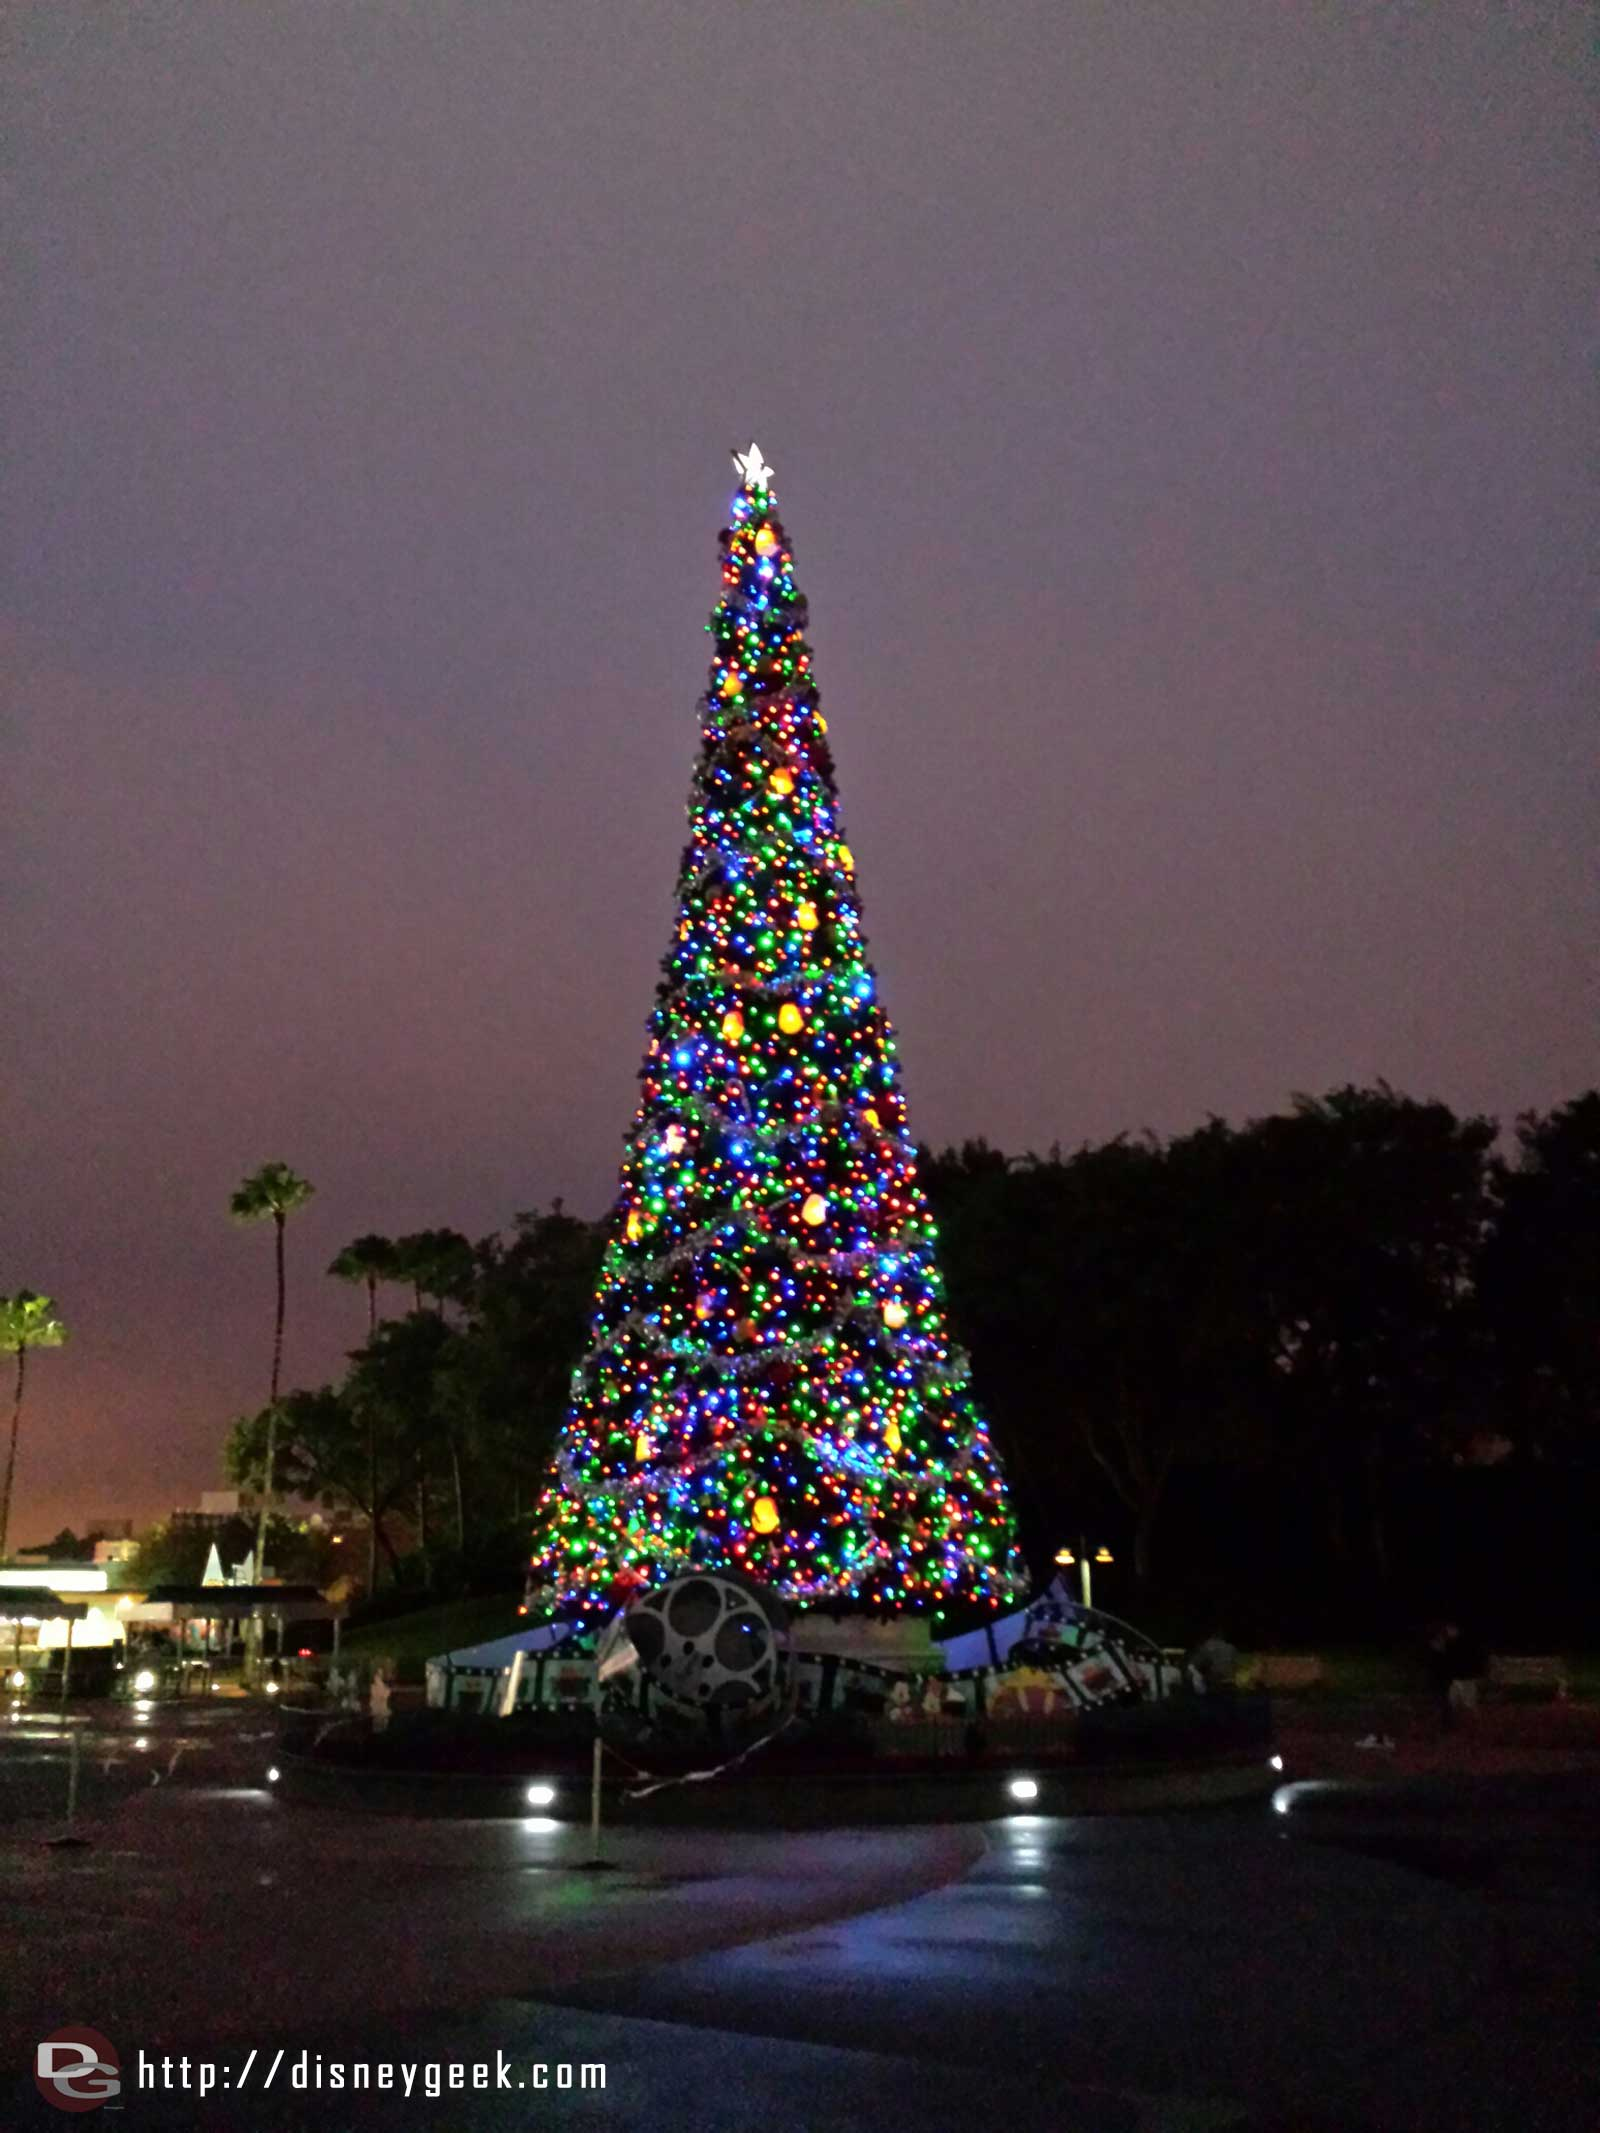 The Disney Hollywood Studios Christmas tree